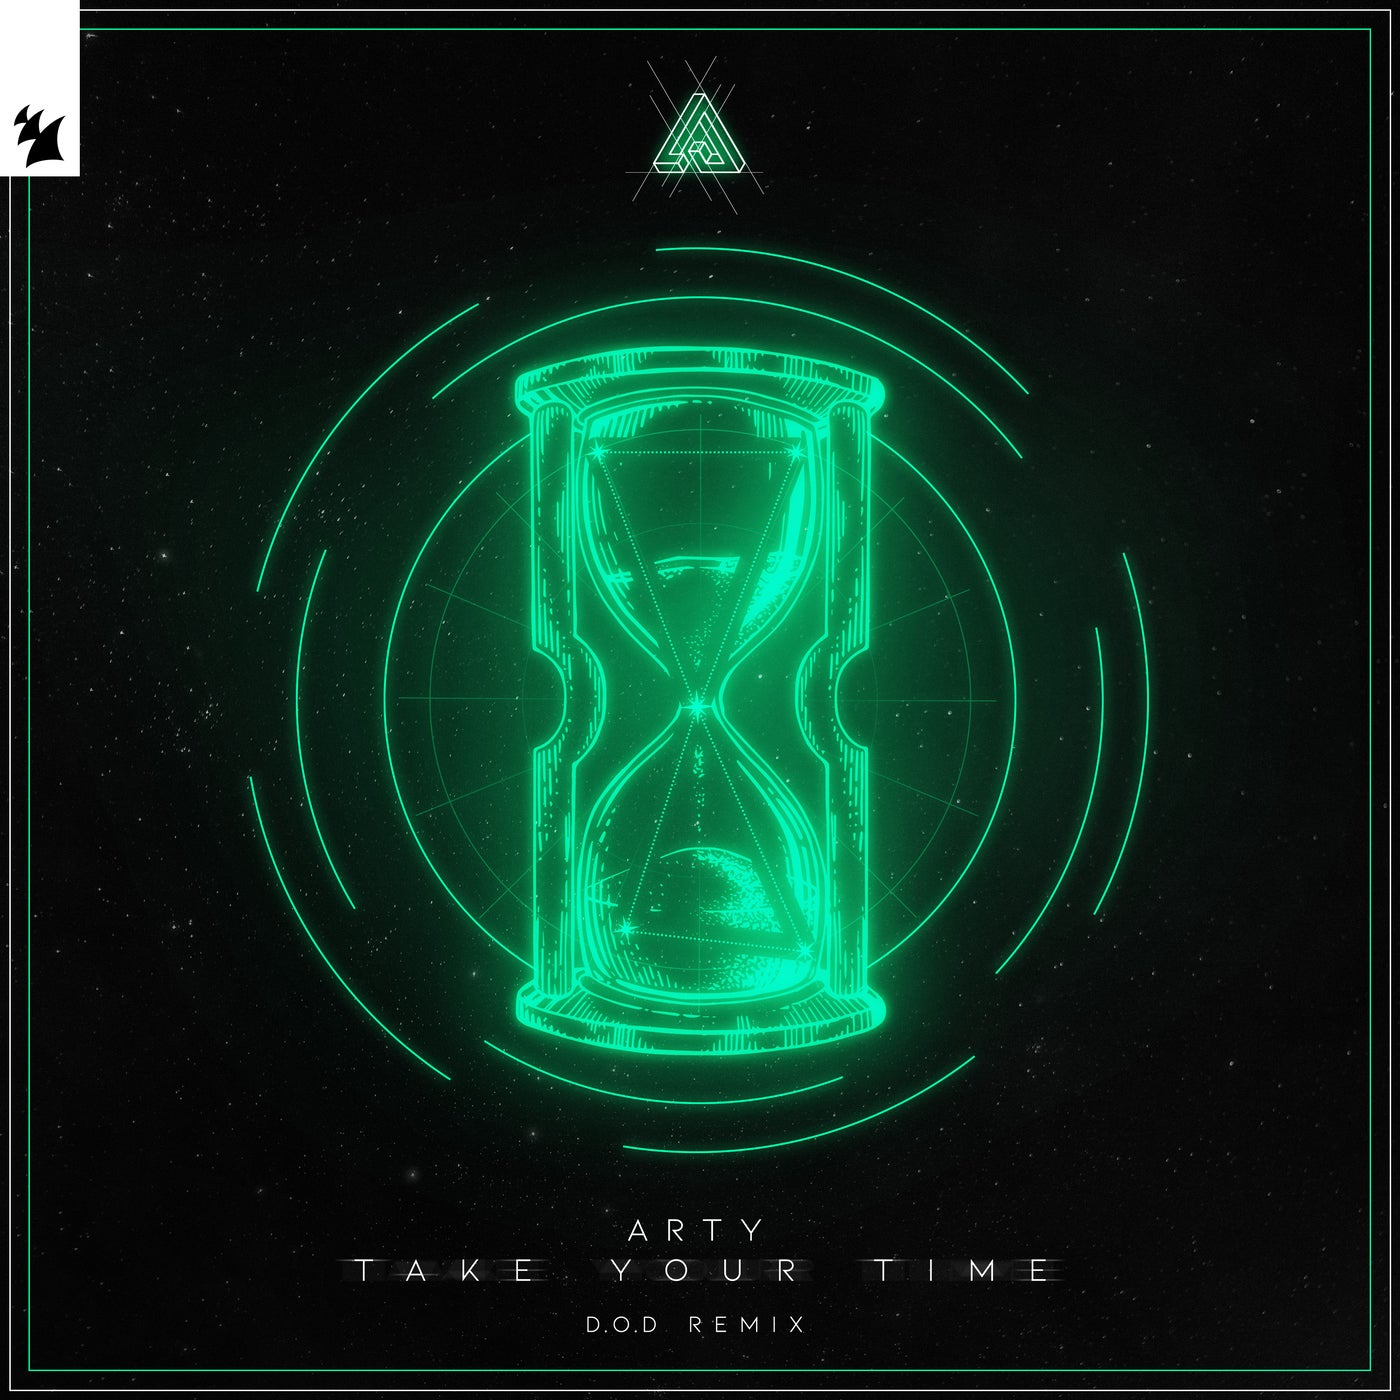 Take Your Time (D.O.D Extended Remix)